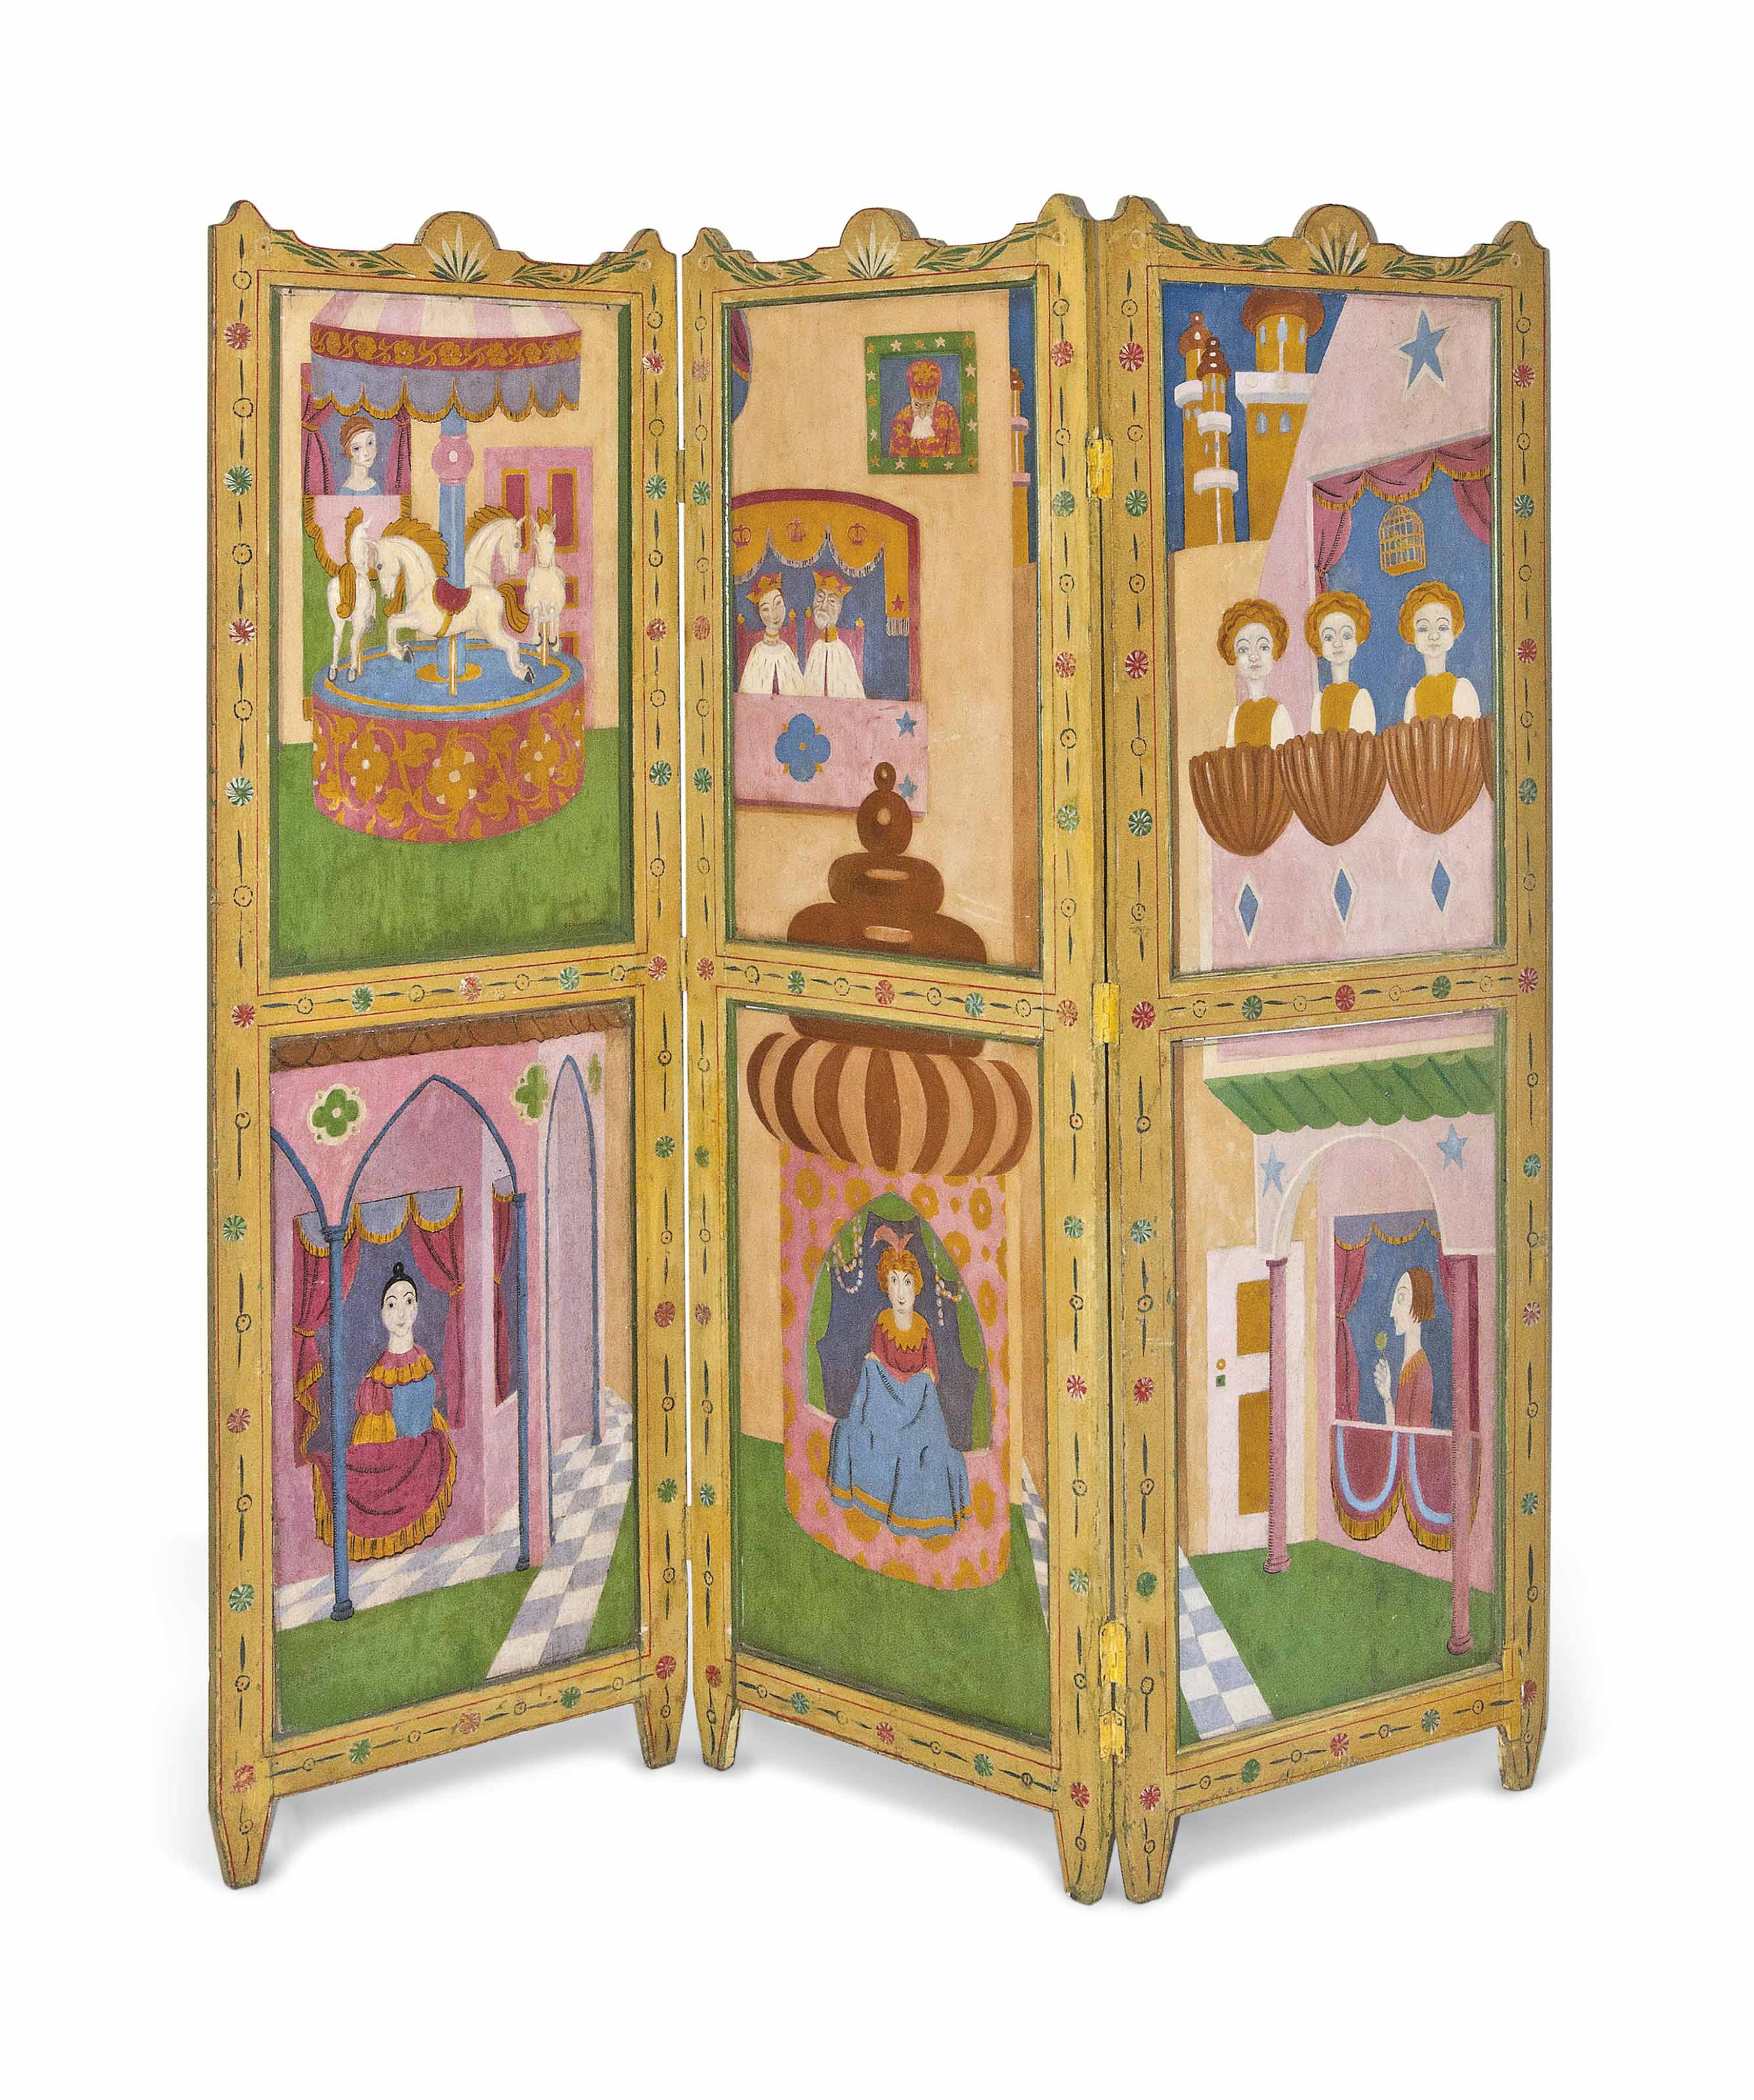 The Beggars Opera - A three-fold wooden screen with six inset panels and carved decoration